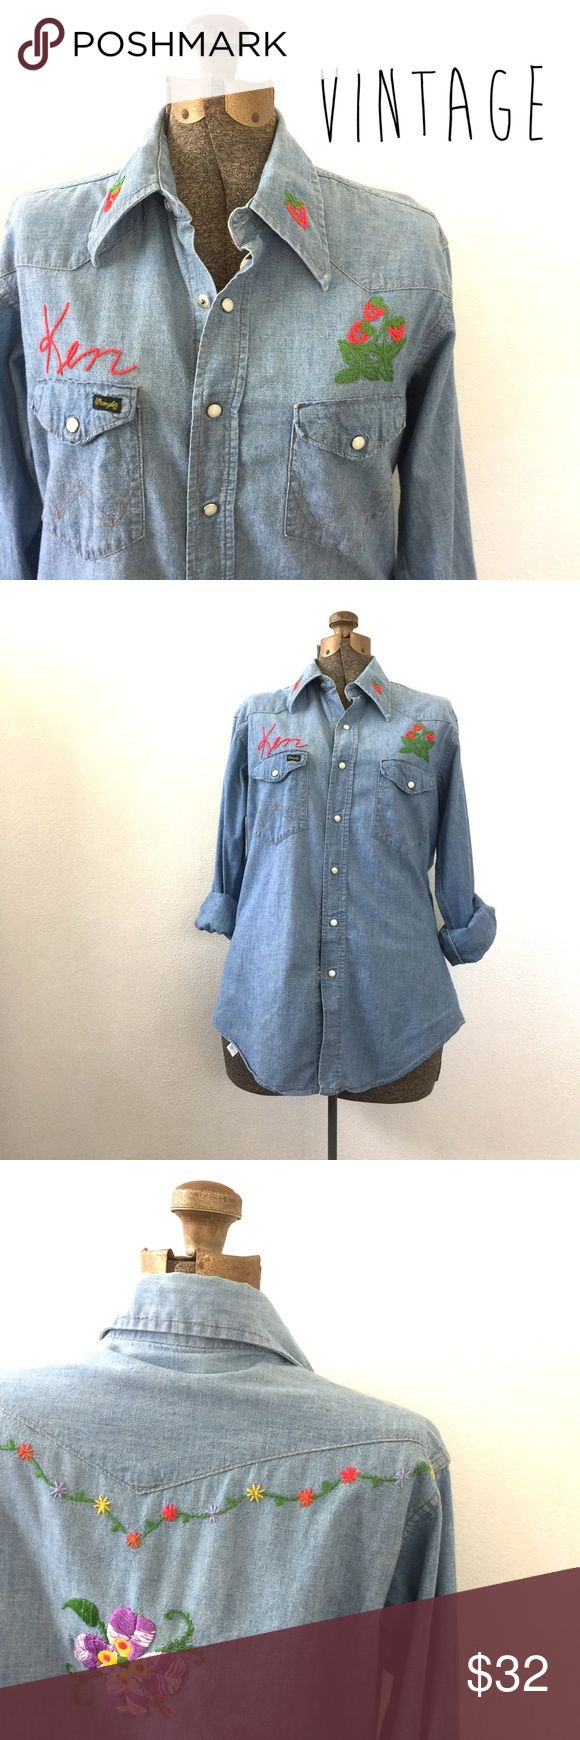 """Vintage Embroidered Wrangler Denim Shirt Amazing vintage hand embroidered Wrangler denim shirt from the 1960s/1970s. Made in USA. Marked size 36MW. Fits like a size small ladies. Pearlized buttons. Apx 29"""" shoulder to hem. Apx 21"""" armpit to armpit. ✌️ Vintage Tops Button Down Shirts"""